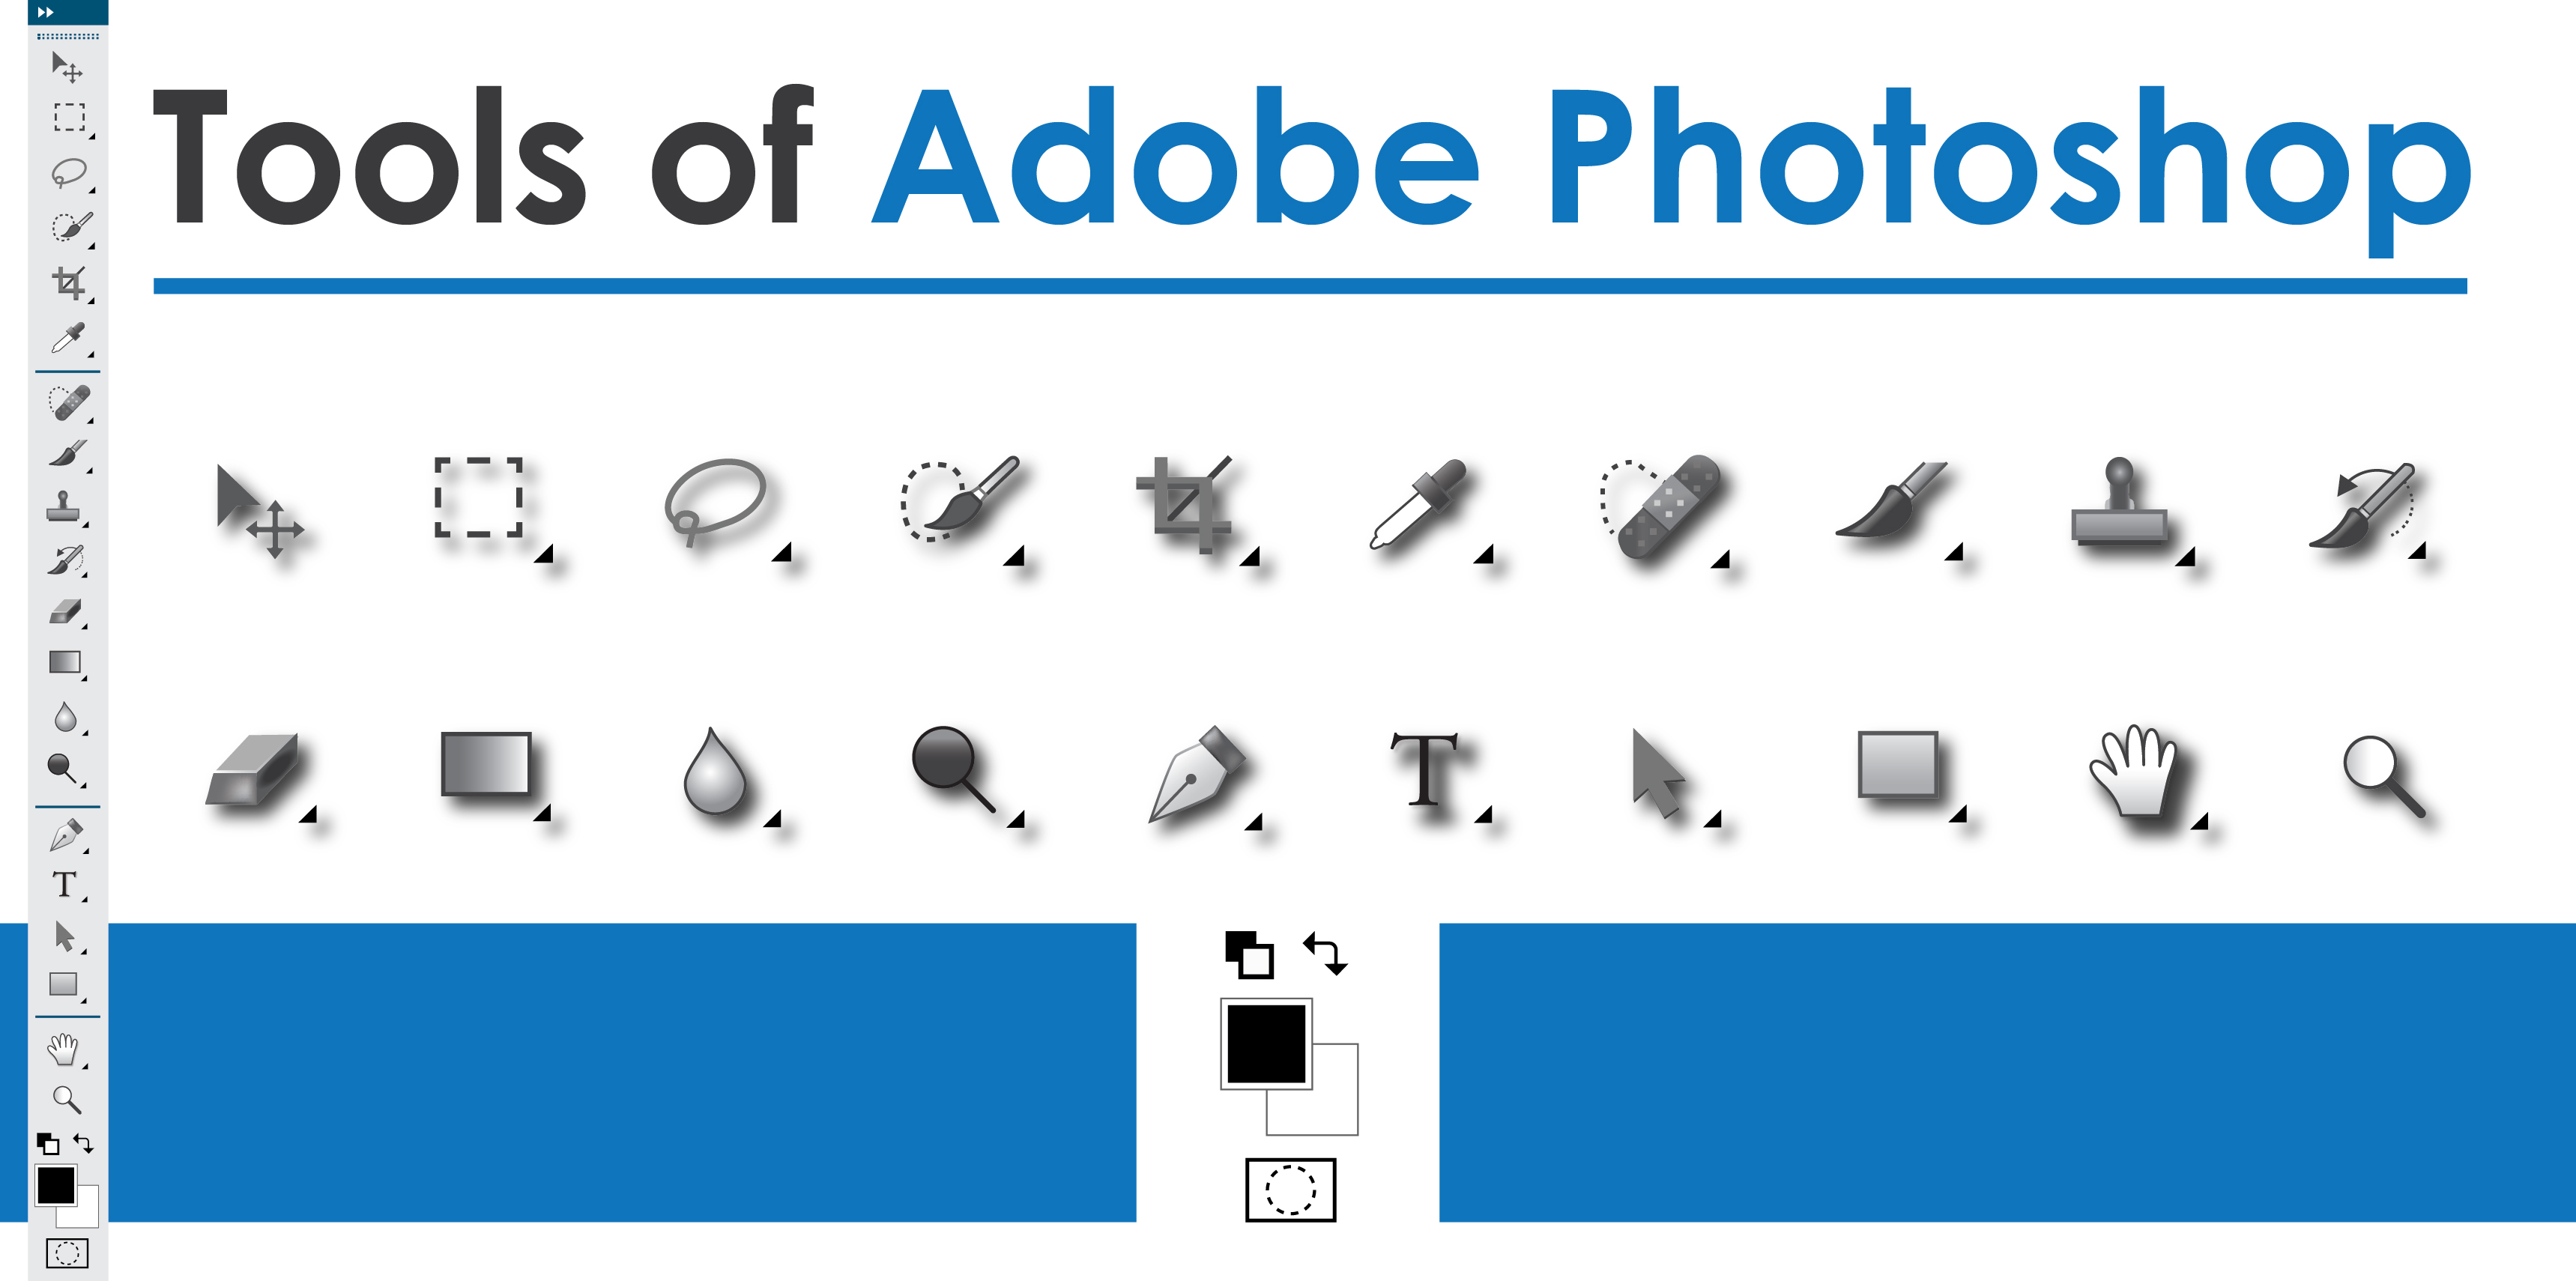 Tools of Adobe Photoshop